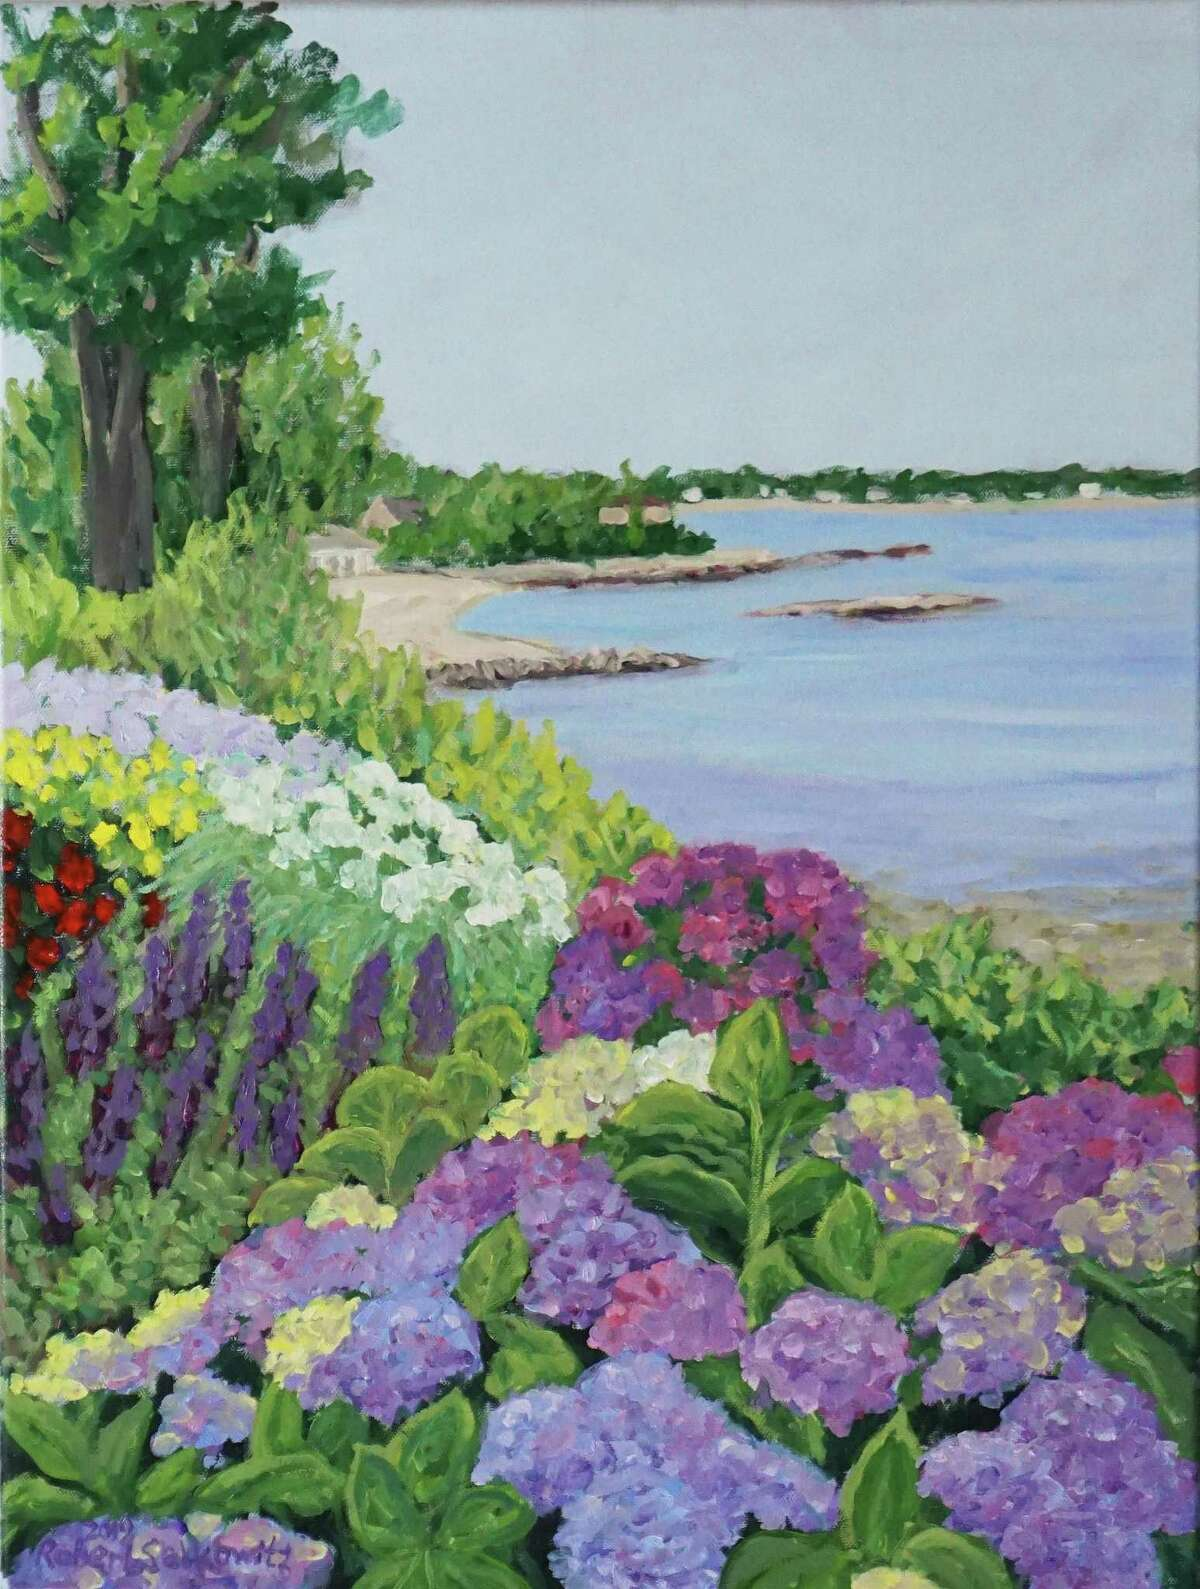 The Stamford Jewish Community Center is hosting an exhibit of a Stamford native's works with